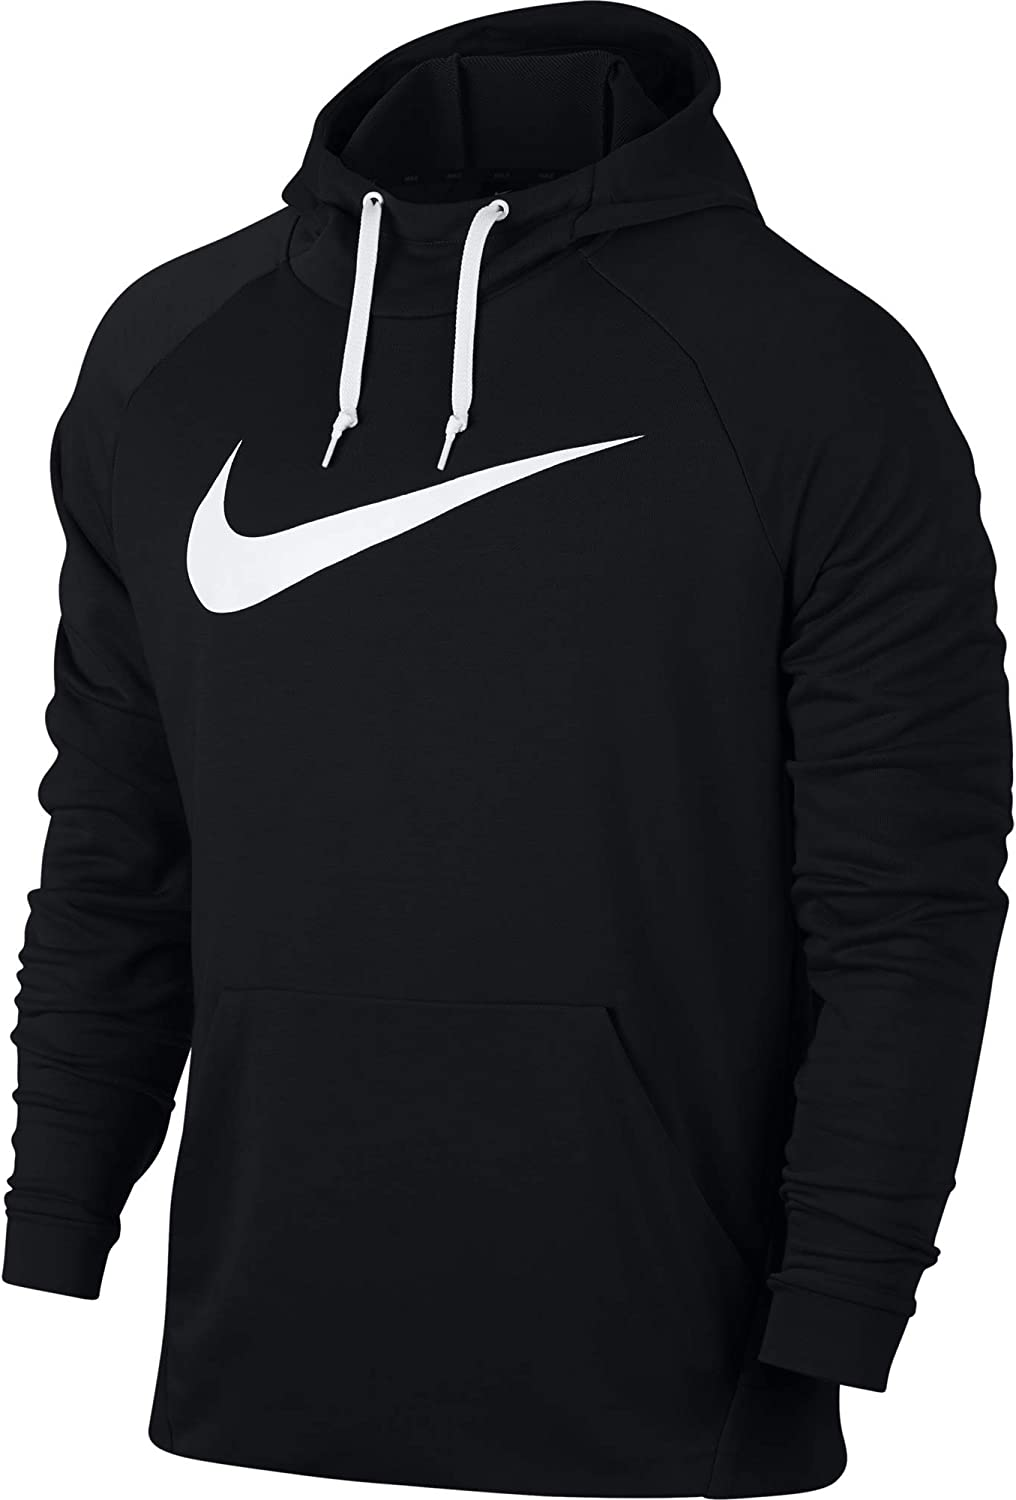 TALLA S. Nike Dry Pull Over Swoosh Sweatshirt, Hombre